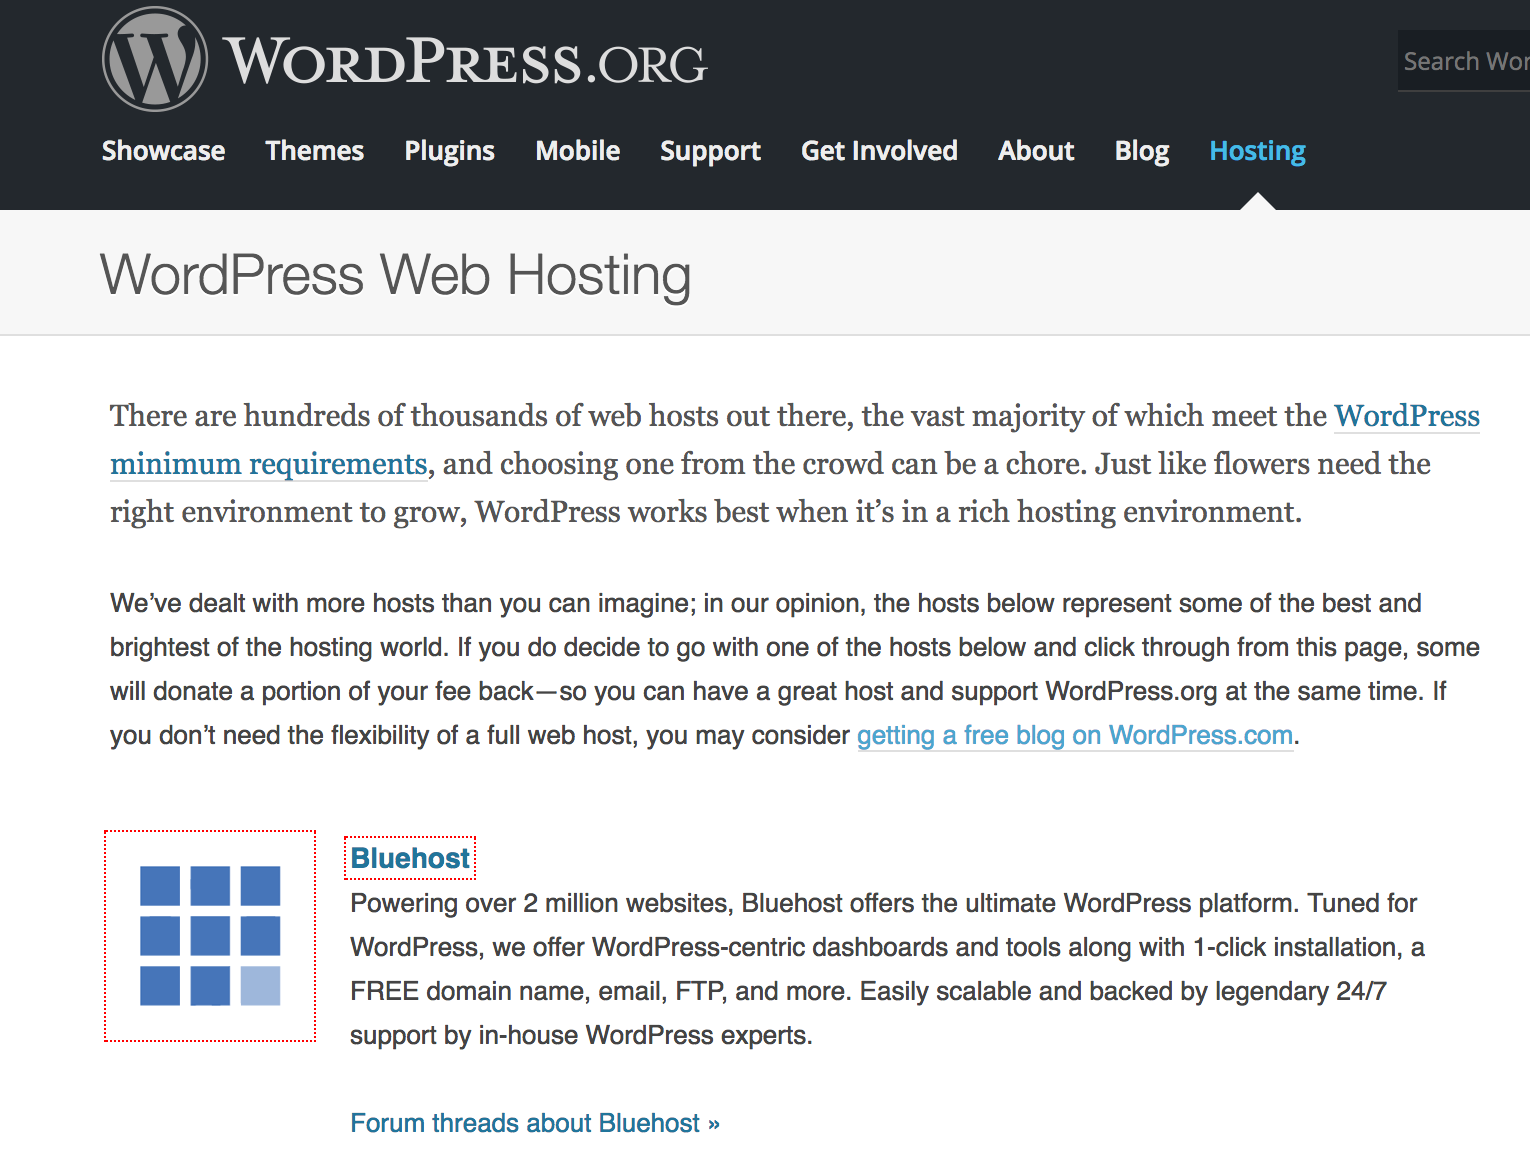 WordPress.org recommends bluehost